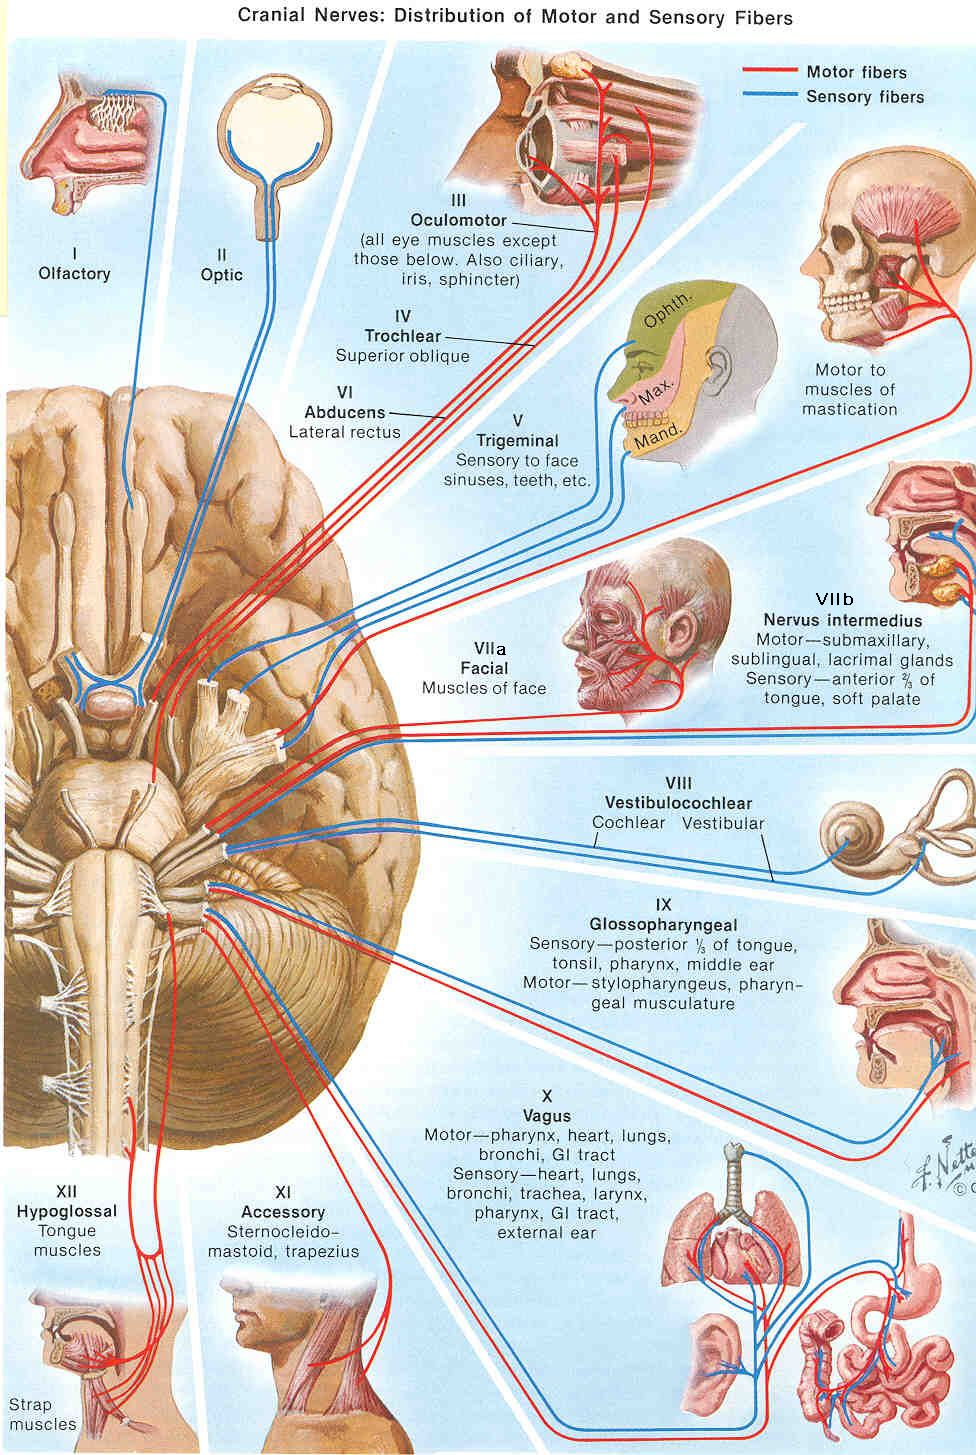 The anatomy and physiology from the nerves in the brain. What if ...